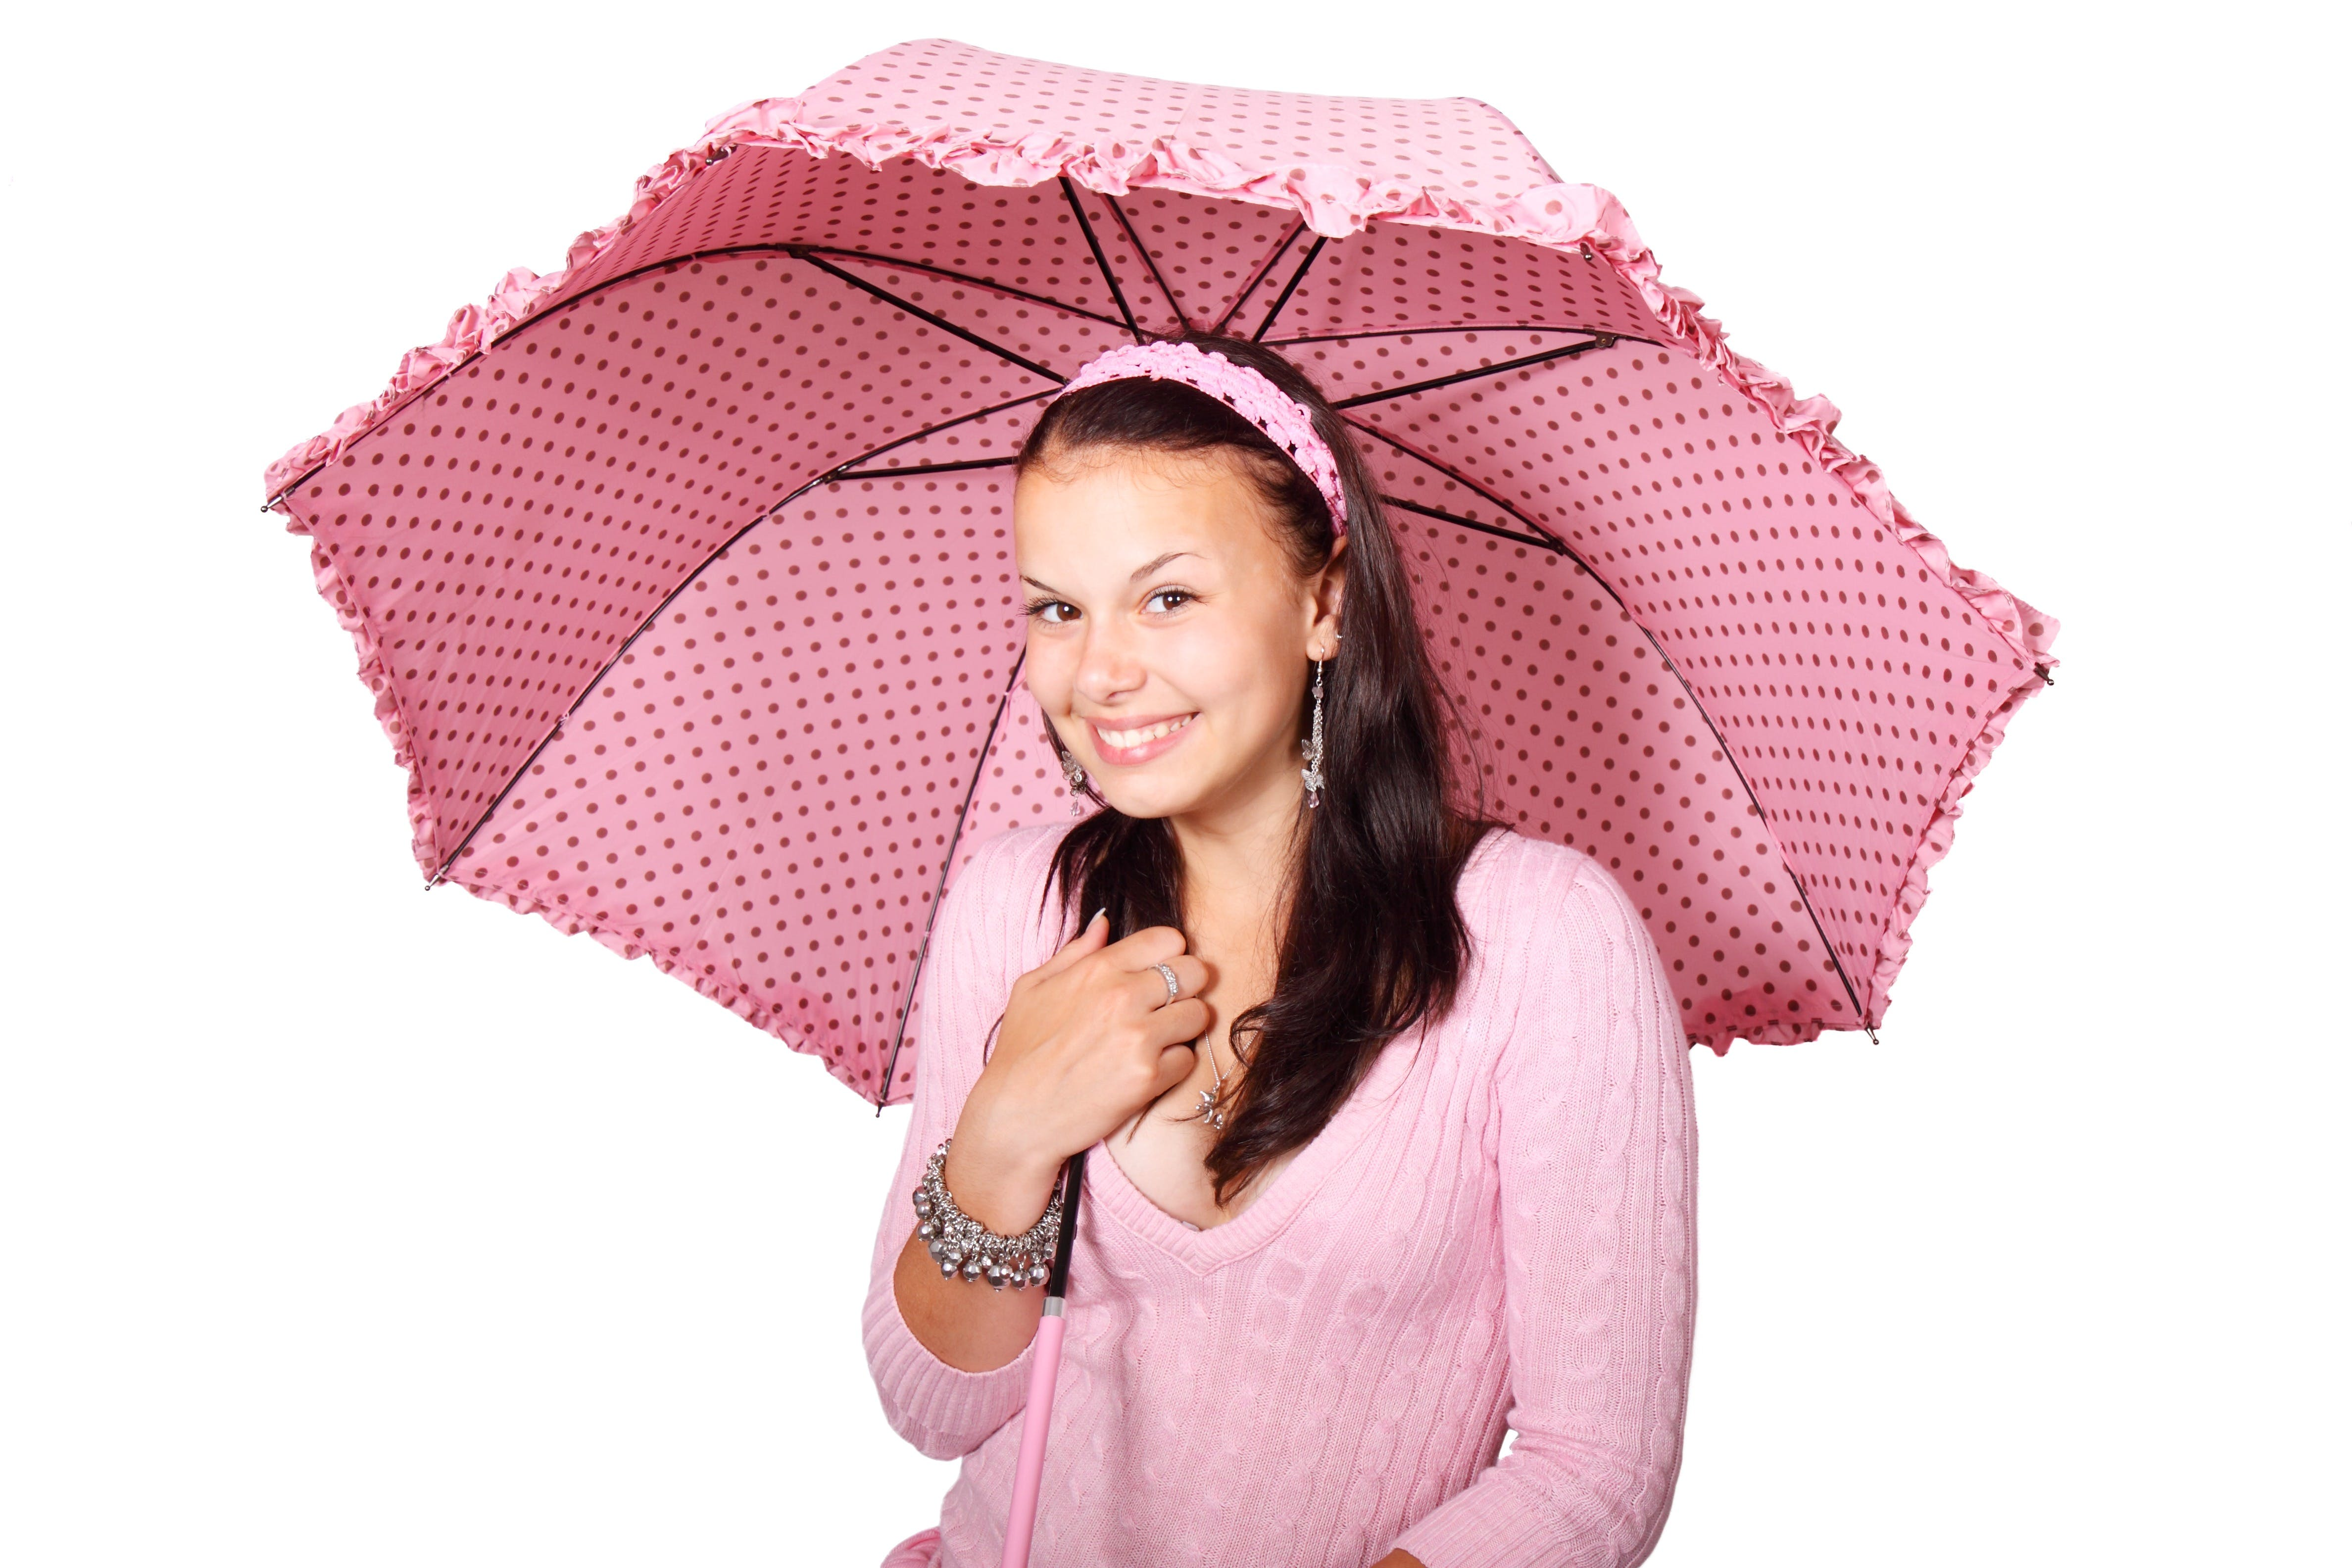 Smiling Woman Wearing Pink Shirt Under Pink-and-black Umbrella